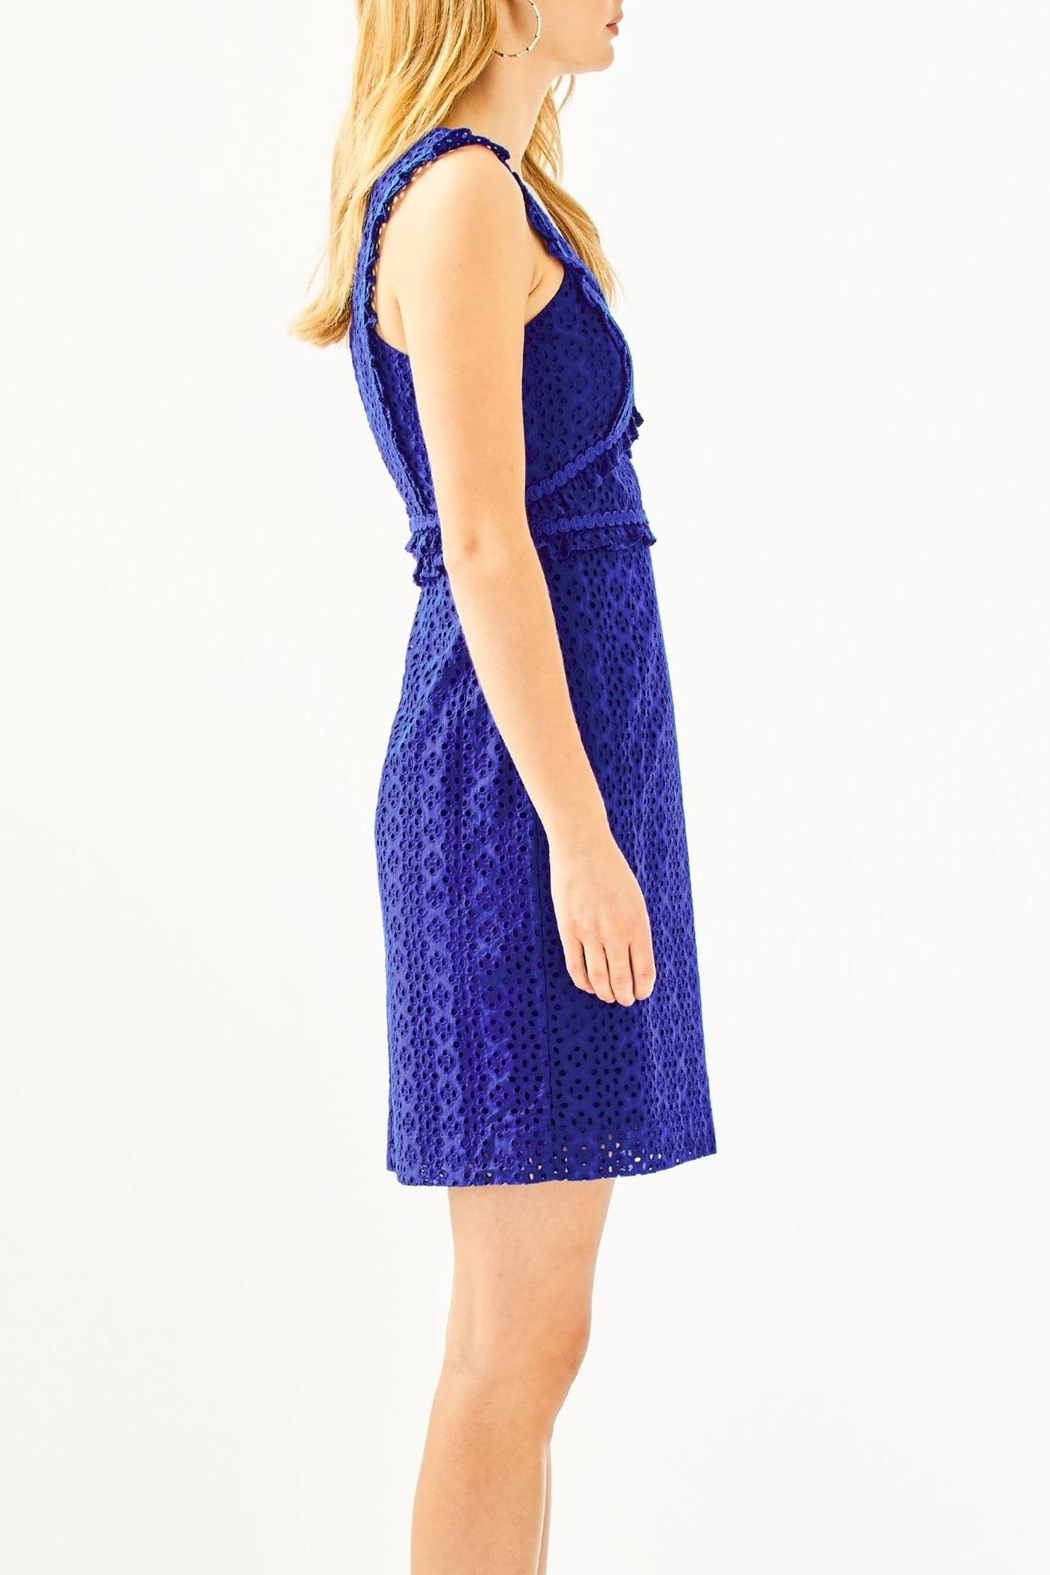 Lilly Pulitzer Kaylee Shift Dress - Side Cropped Image